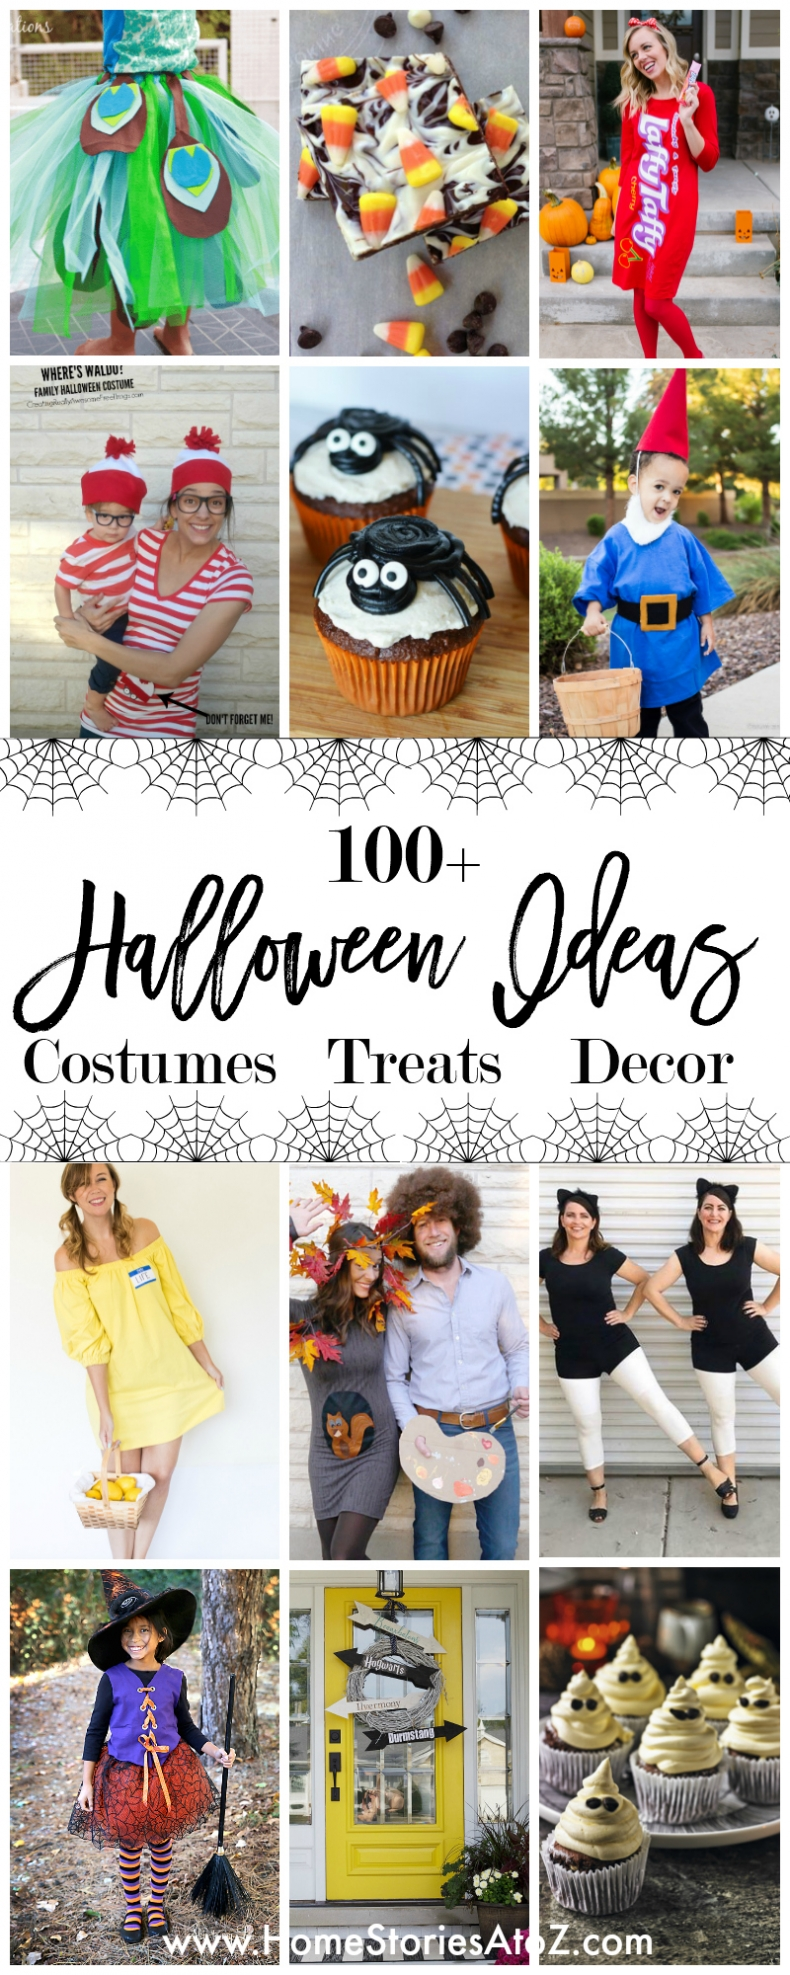 100+ Halloween Ideas - Costumes Treats Decor Halloween Ideas